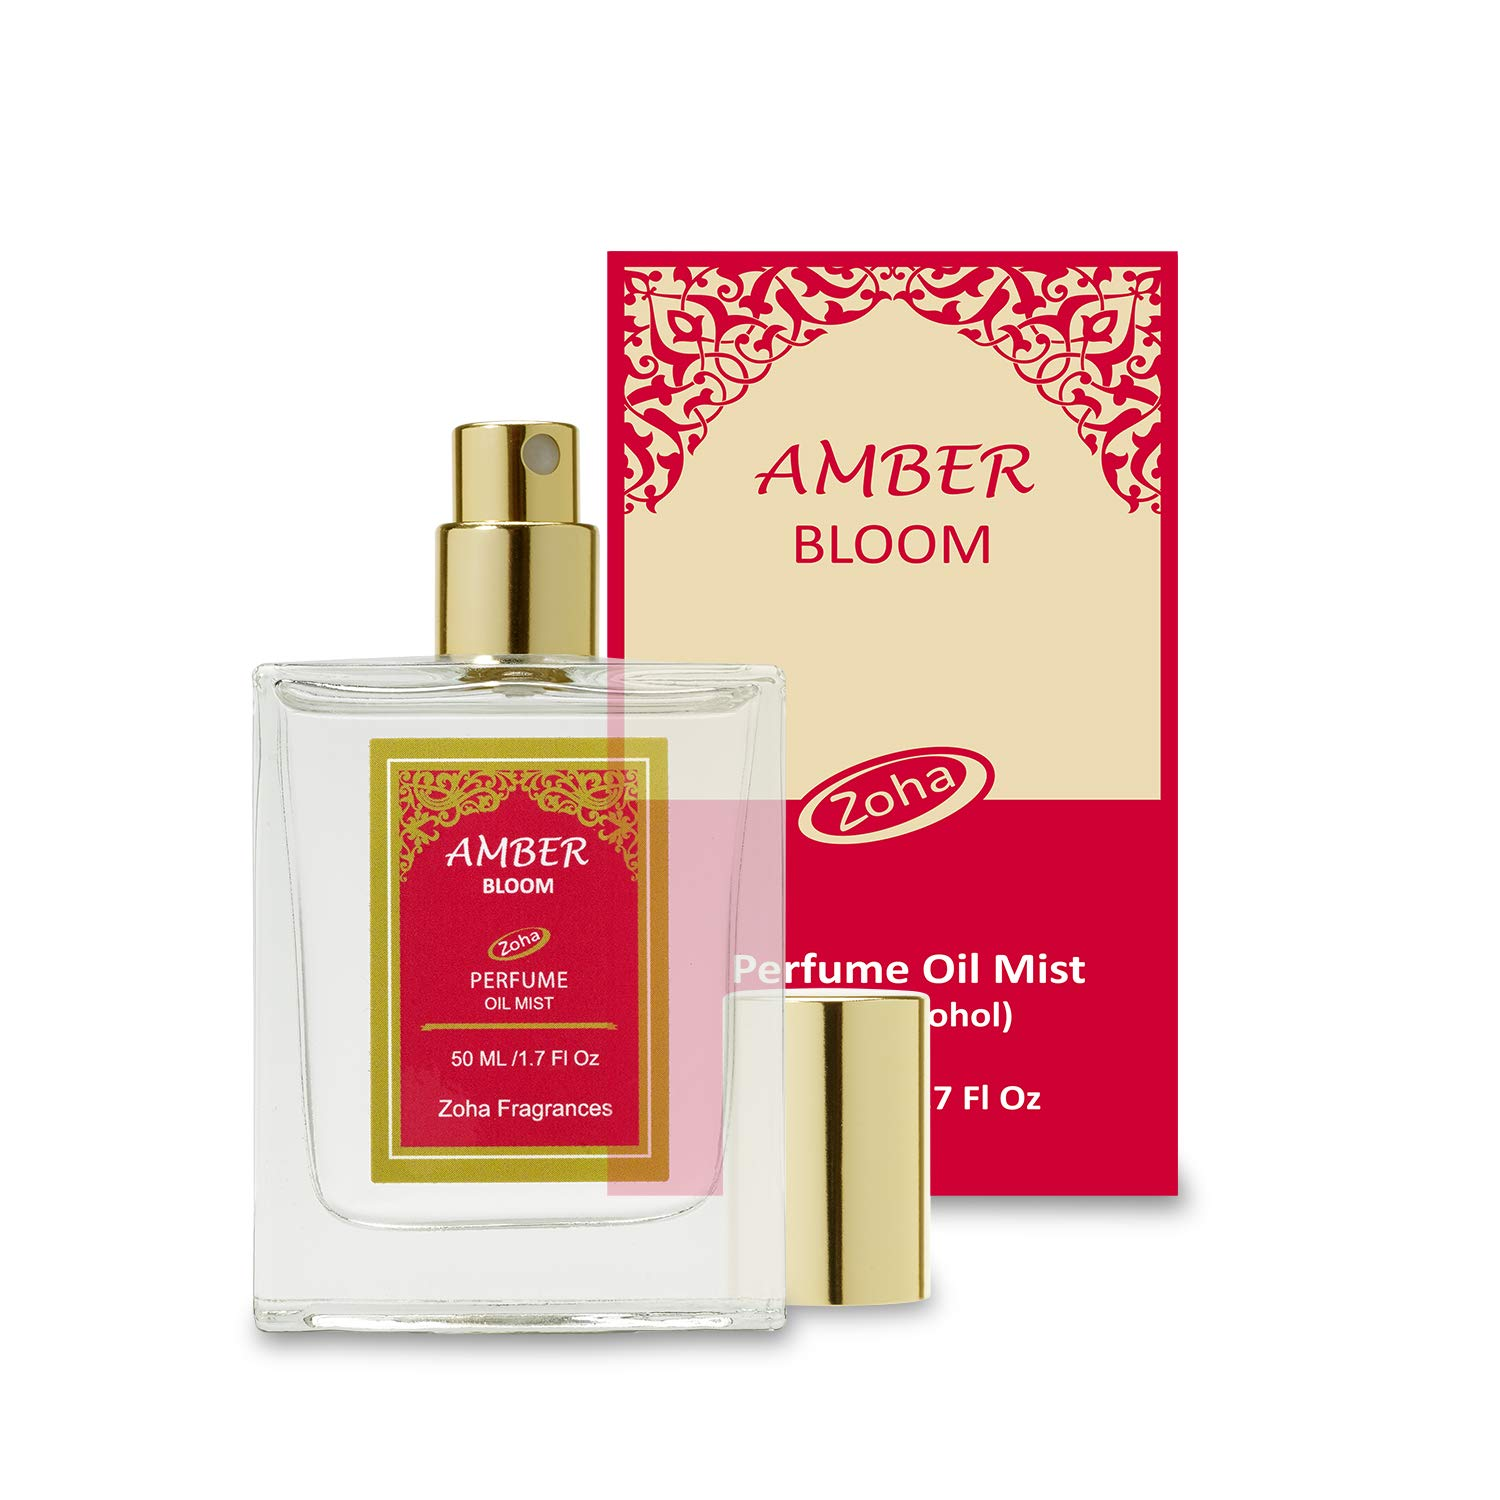 Amber Bloom Perfume Oil Mist (No Alcohol) Amber Oil Fragrance - Essential Oils and Perfumes for Women and Men by Zoha Fragrances, 50 ml / 1.7 fl Oz by Zoha